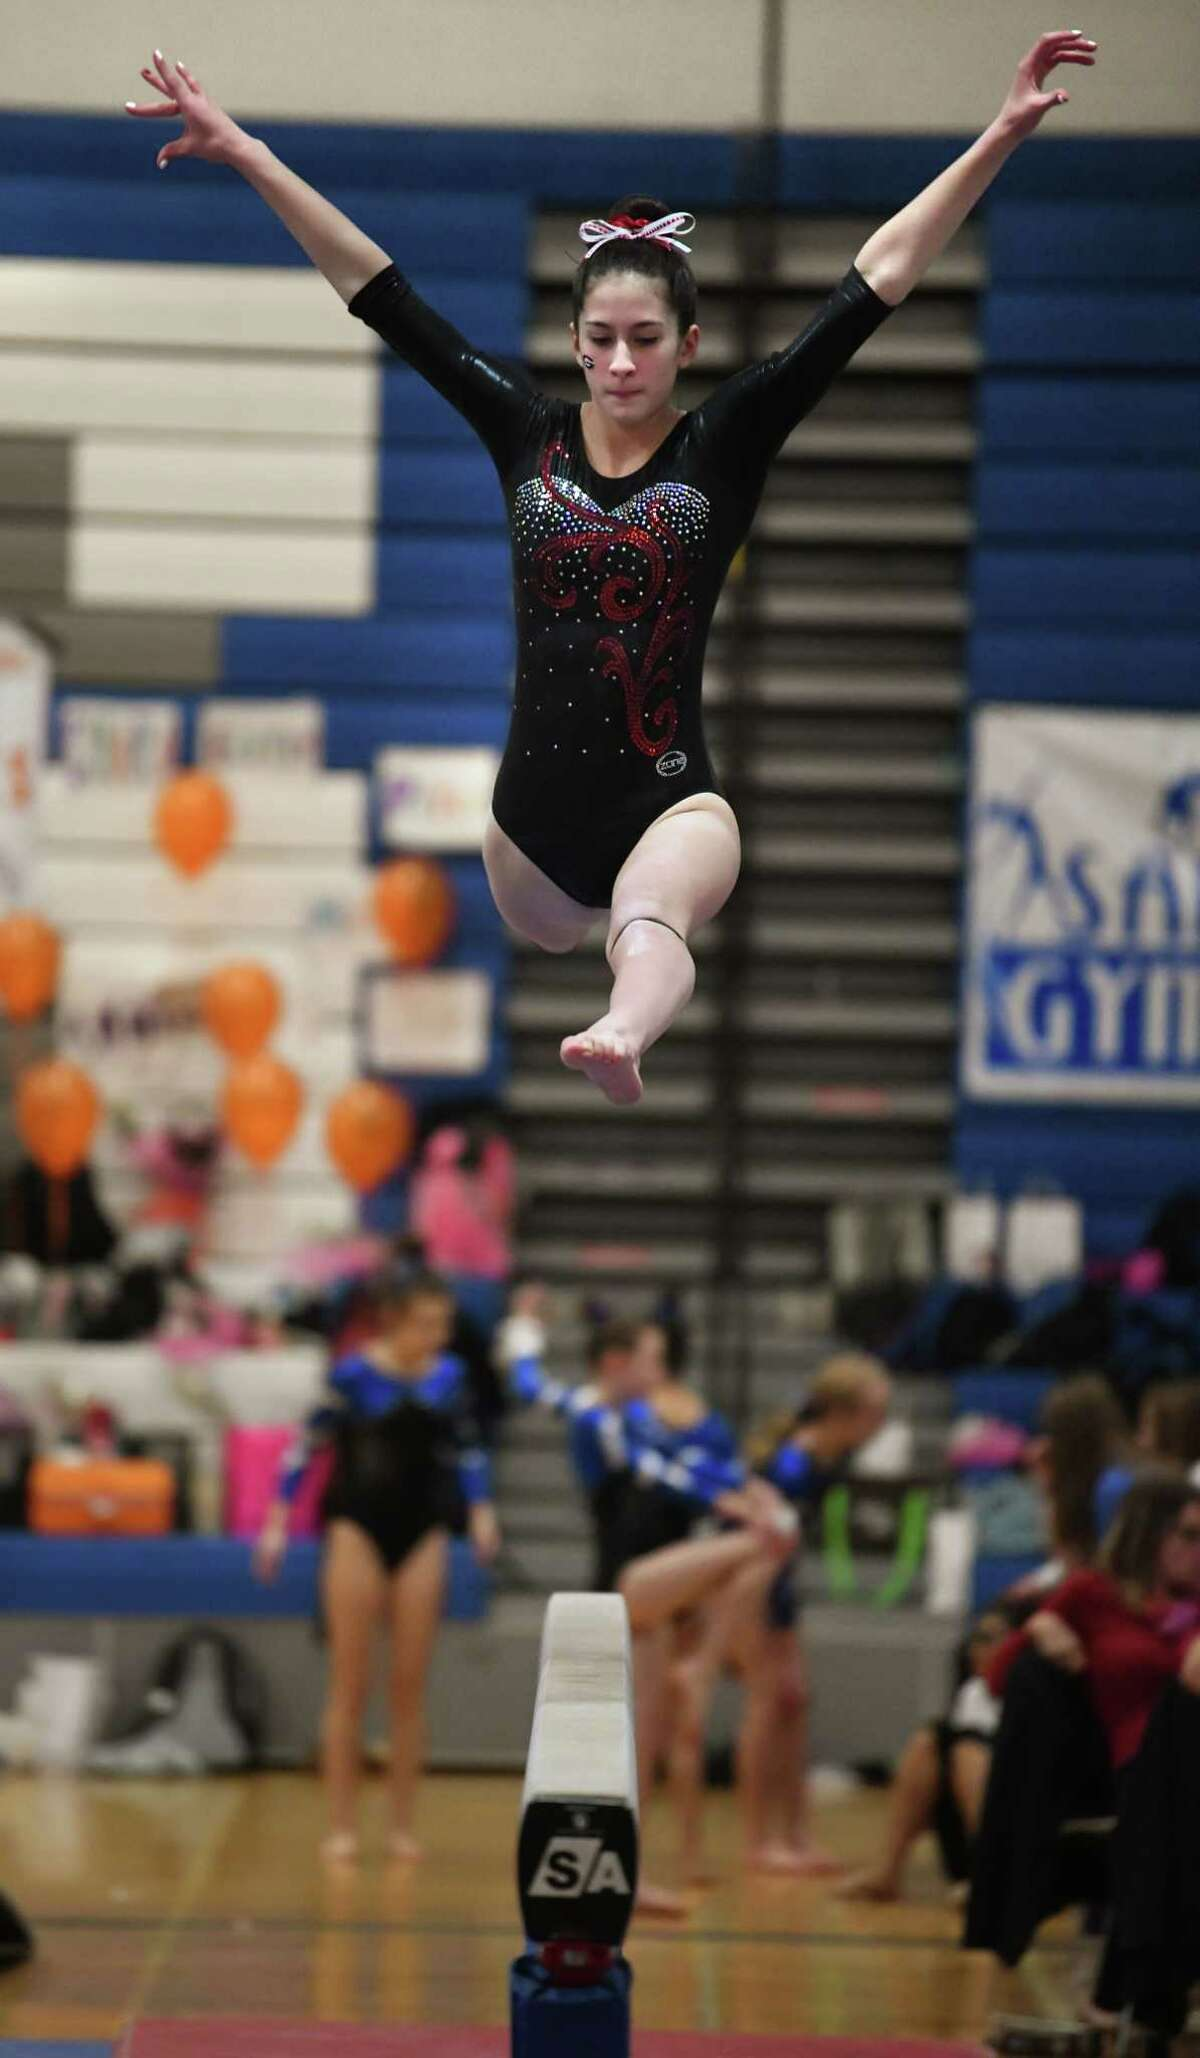 Guilderland's Addison Seebode competes on the balance beam during the Section II Gymnastics sectionals at Shaker High School on Wednesday, Feb. 12, 2020 in Latham, N.Y. (Lori Van Buren/Times Union)